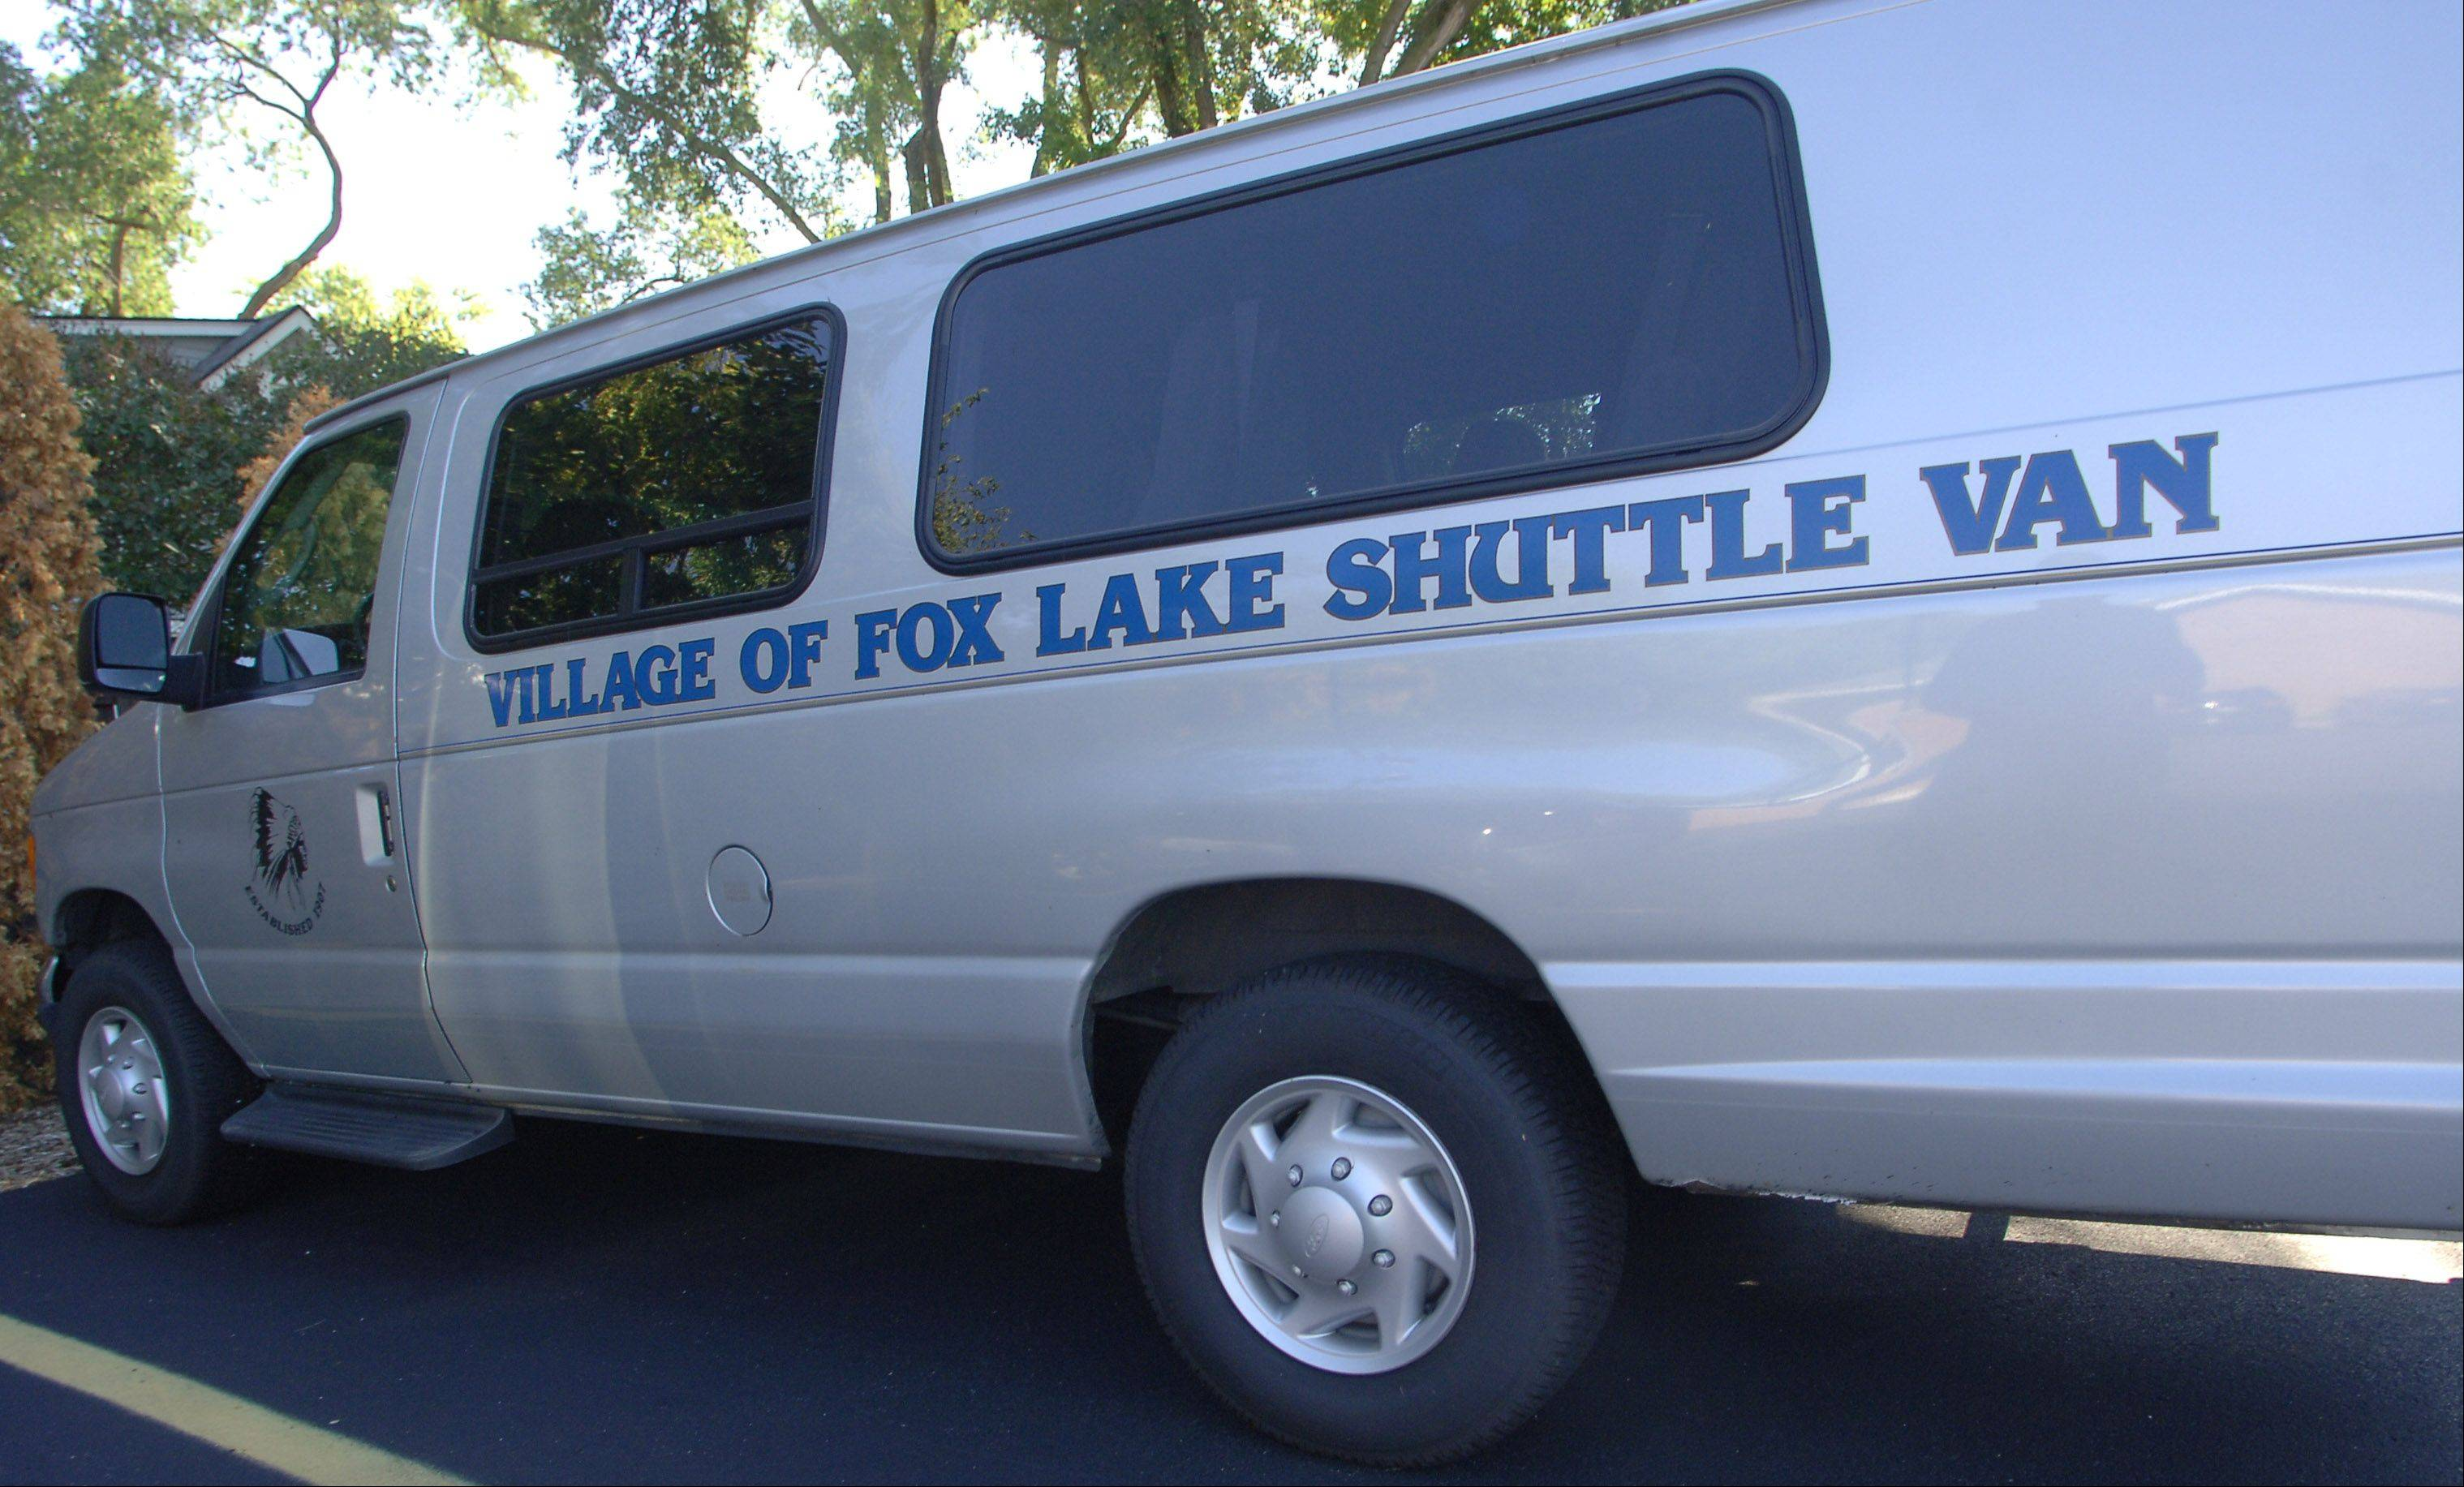 Fox Lake has discontinued its senior shuttle van service after 12 years due to escalating costs.